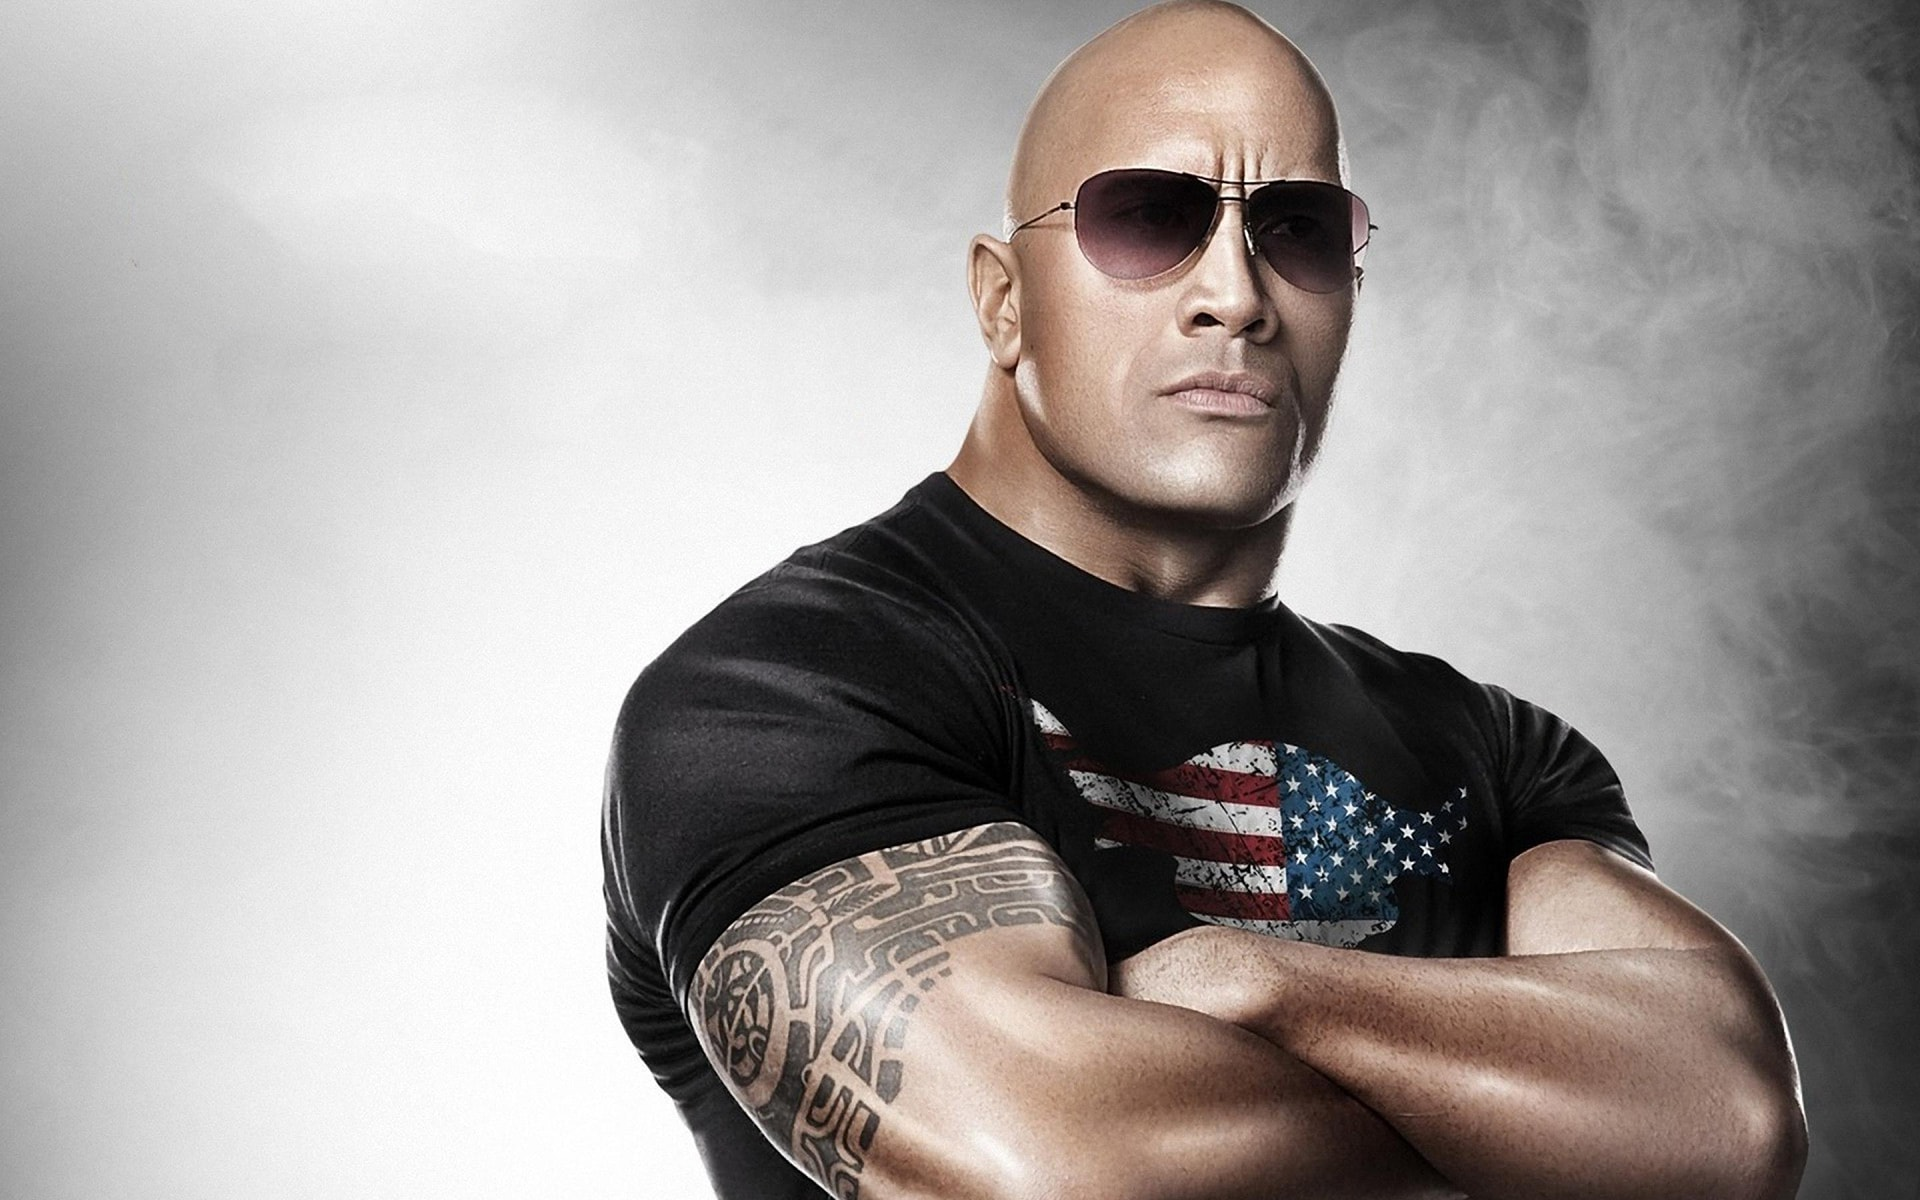 Dwayne Johnson Full hd wallpapers